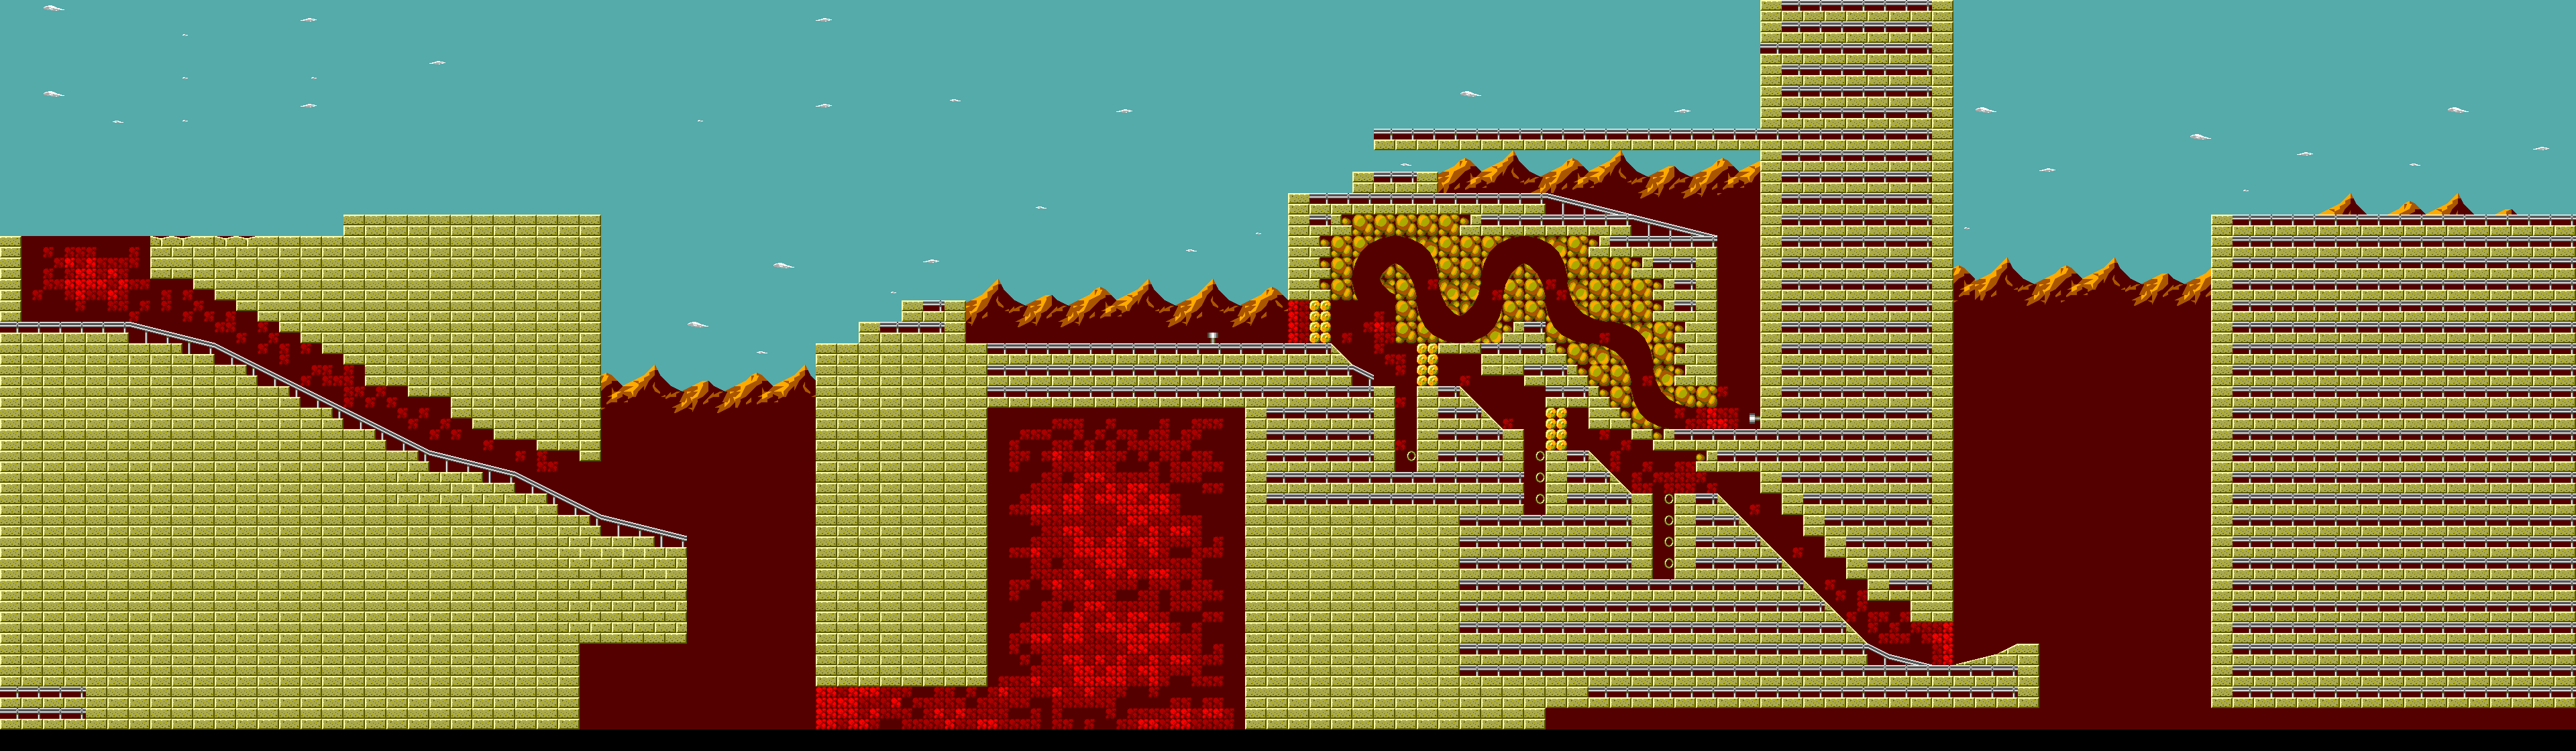 Sonic2AutoDemo_GG_UGZ2_Map.png